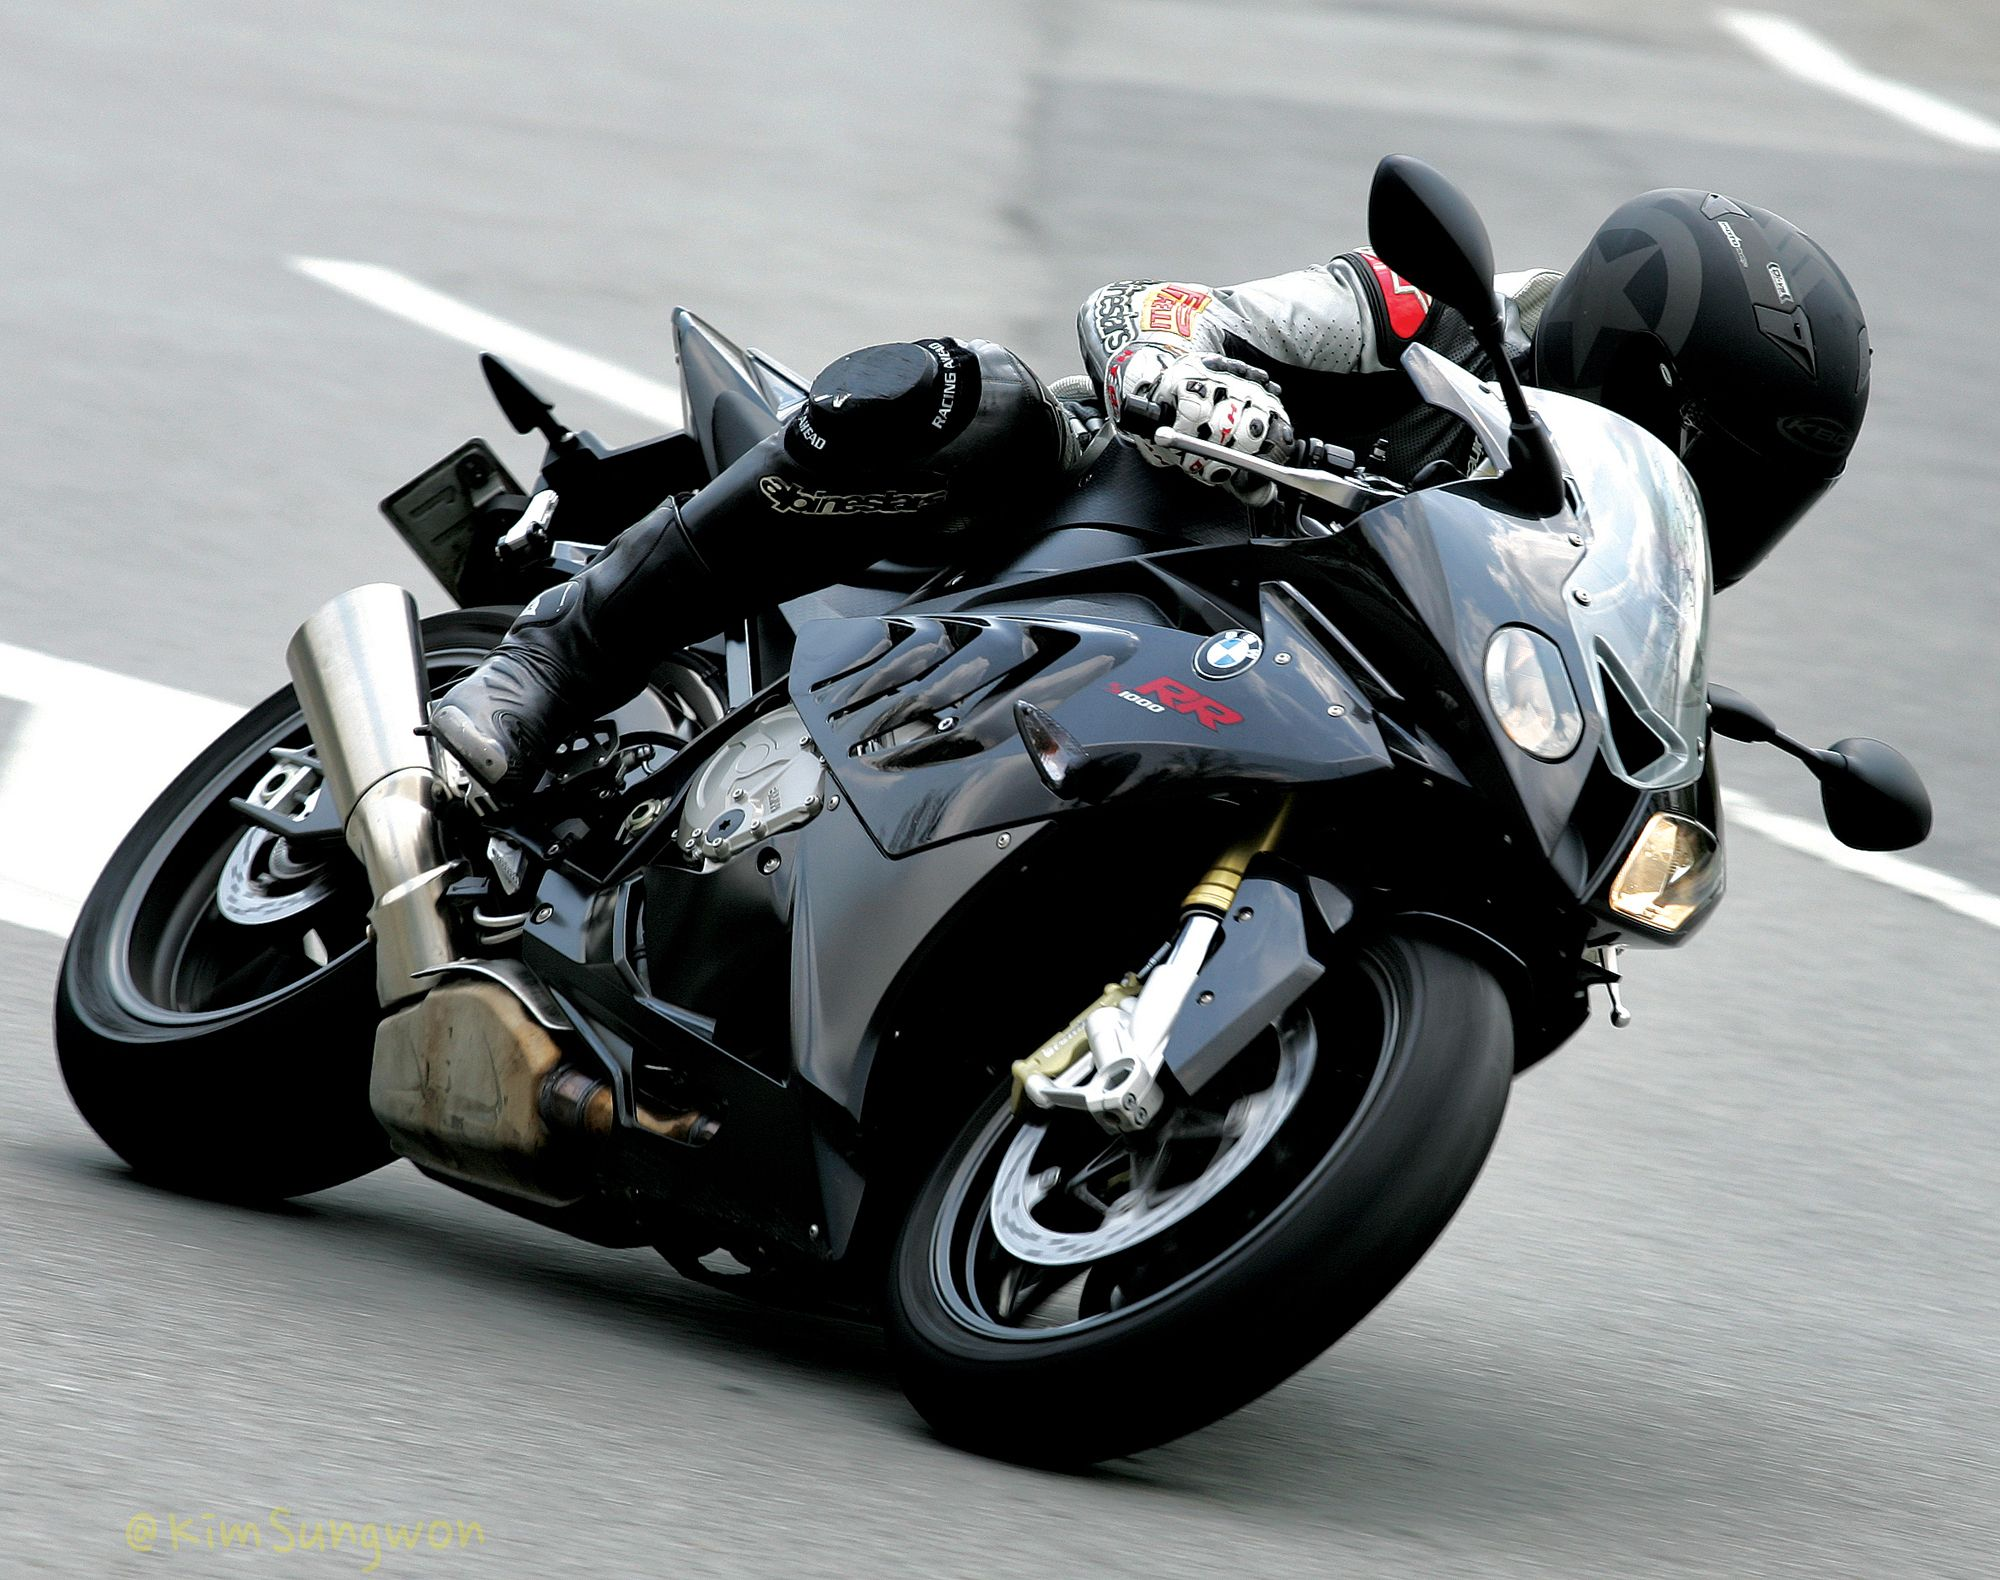 Bmw S1000rr By K Sungwon On Flickr Bmw S1000rr Fast Bikes